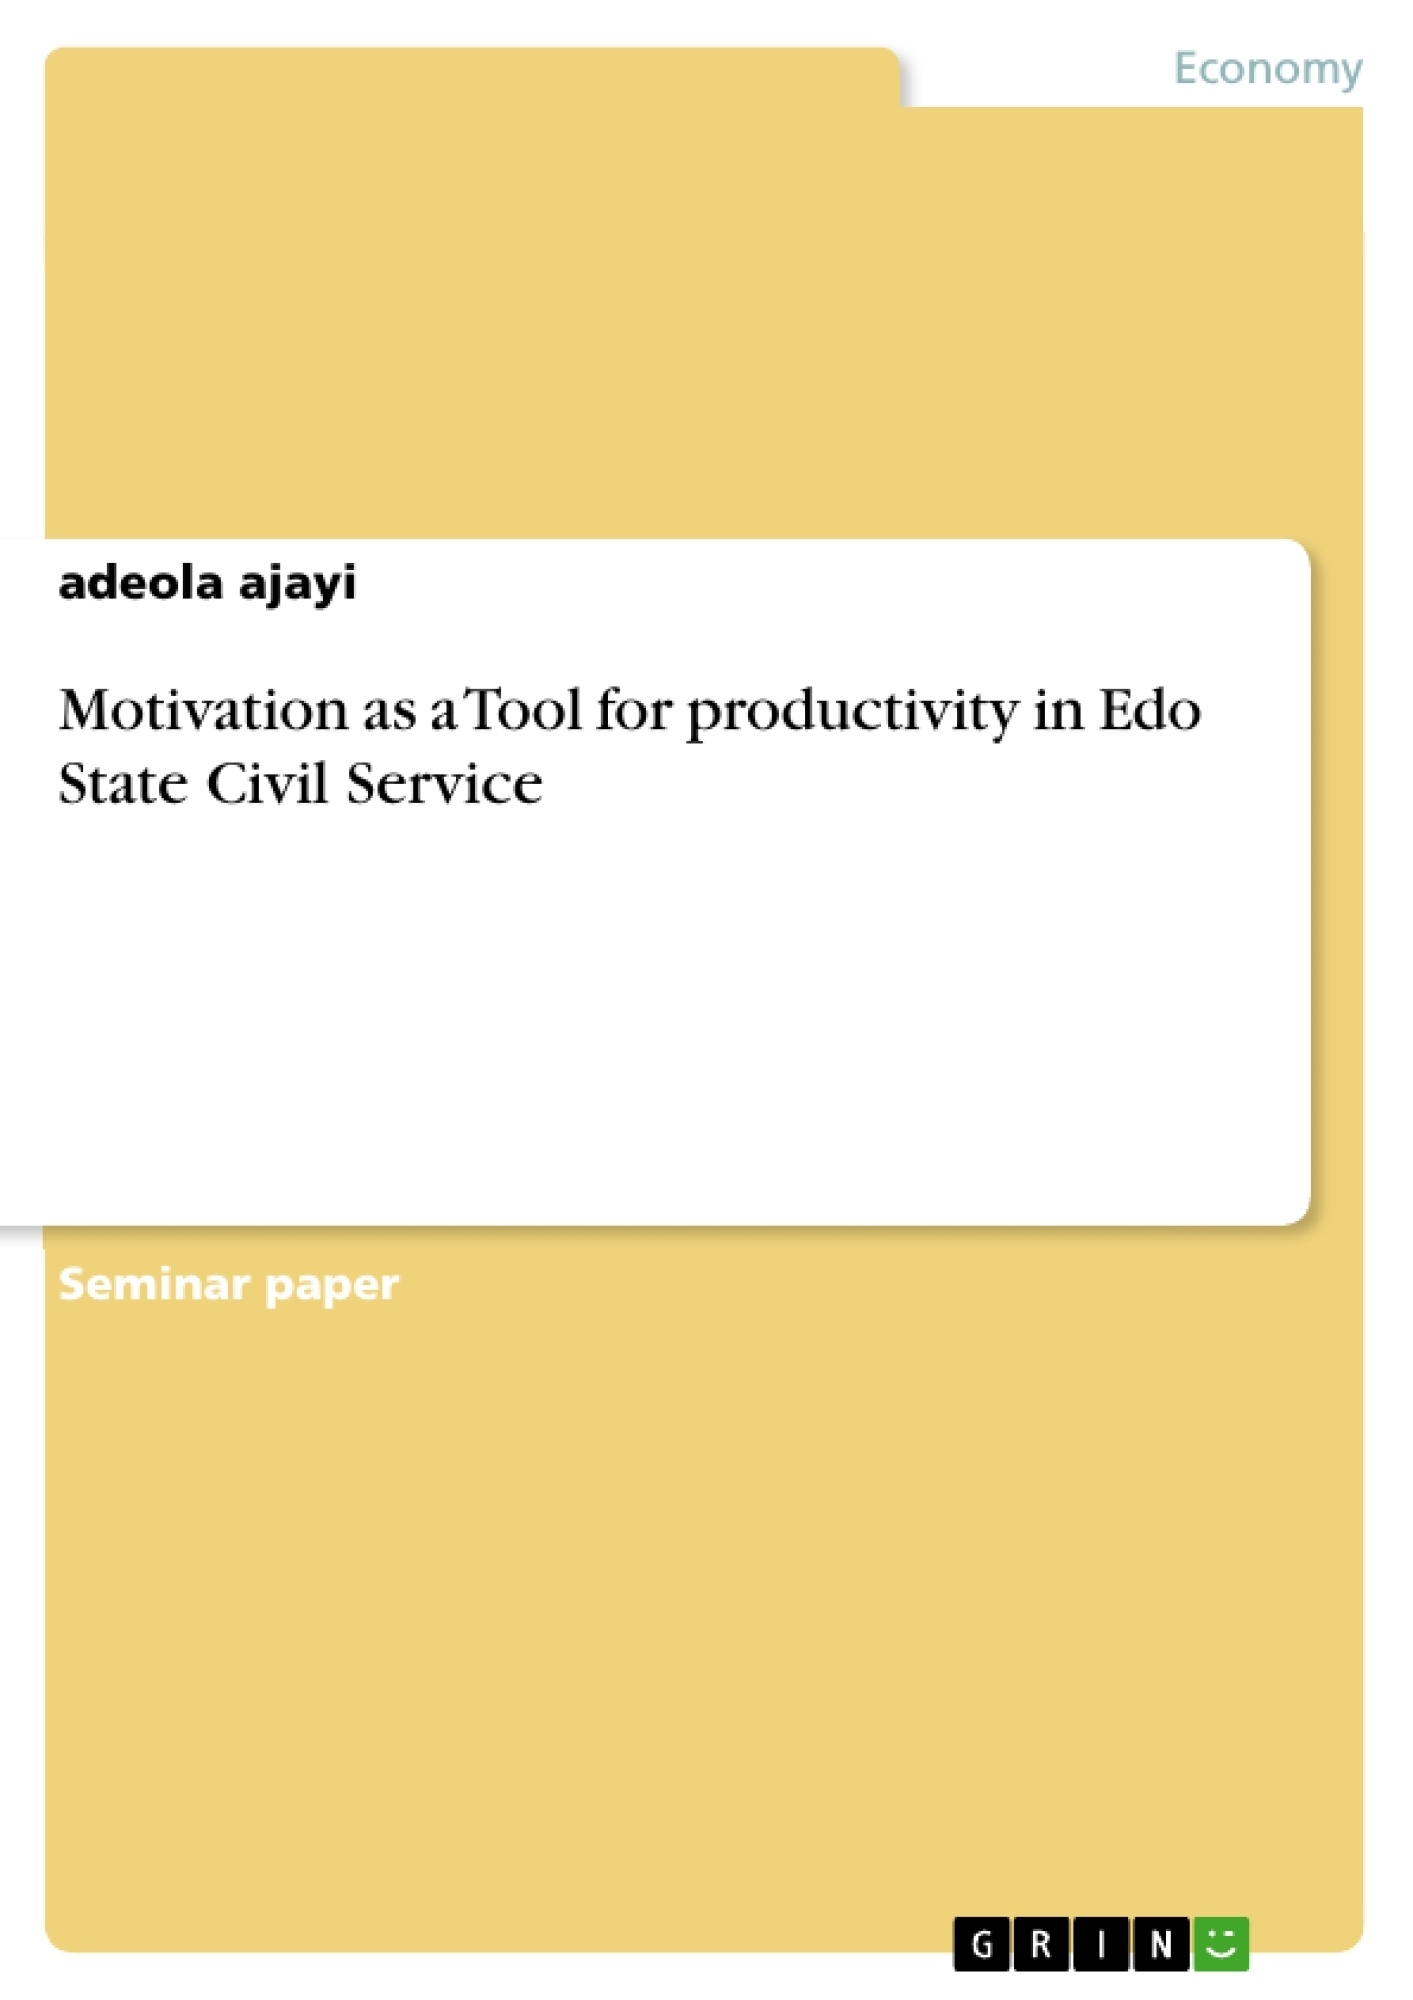 Title: Motivation as a Tool for productivity in Edo State Civil Service